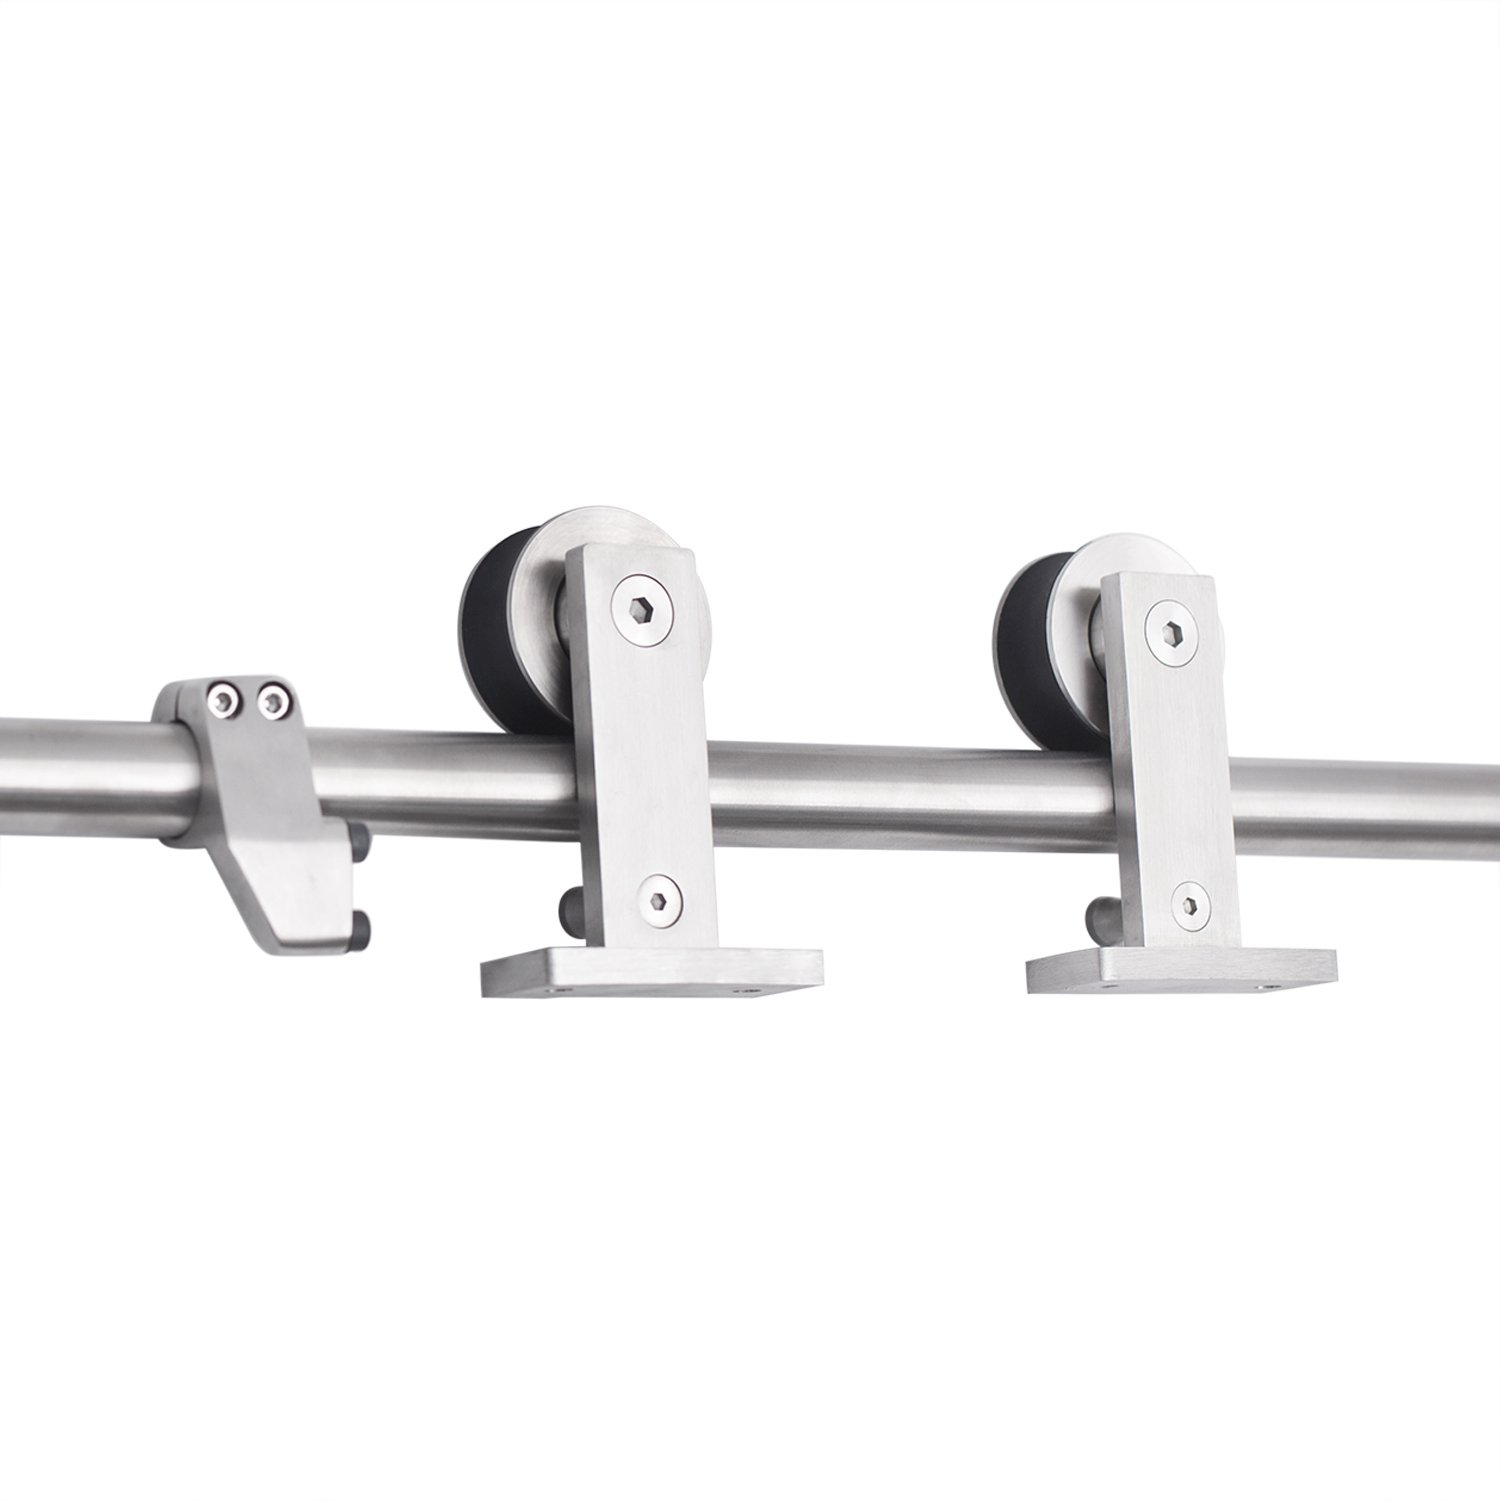 SMARTSTANDARD SDH0080STAINLESS01 Top Mount Sliding Barn Door Hardware Kit, 8ft Single Rail,Stainless Steel, Super Smoothly & Quietly, Simple & Easy to Install, Fit 42''-48'' Wide (T Shape Hanger)